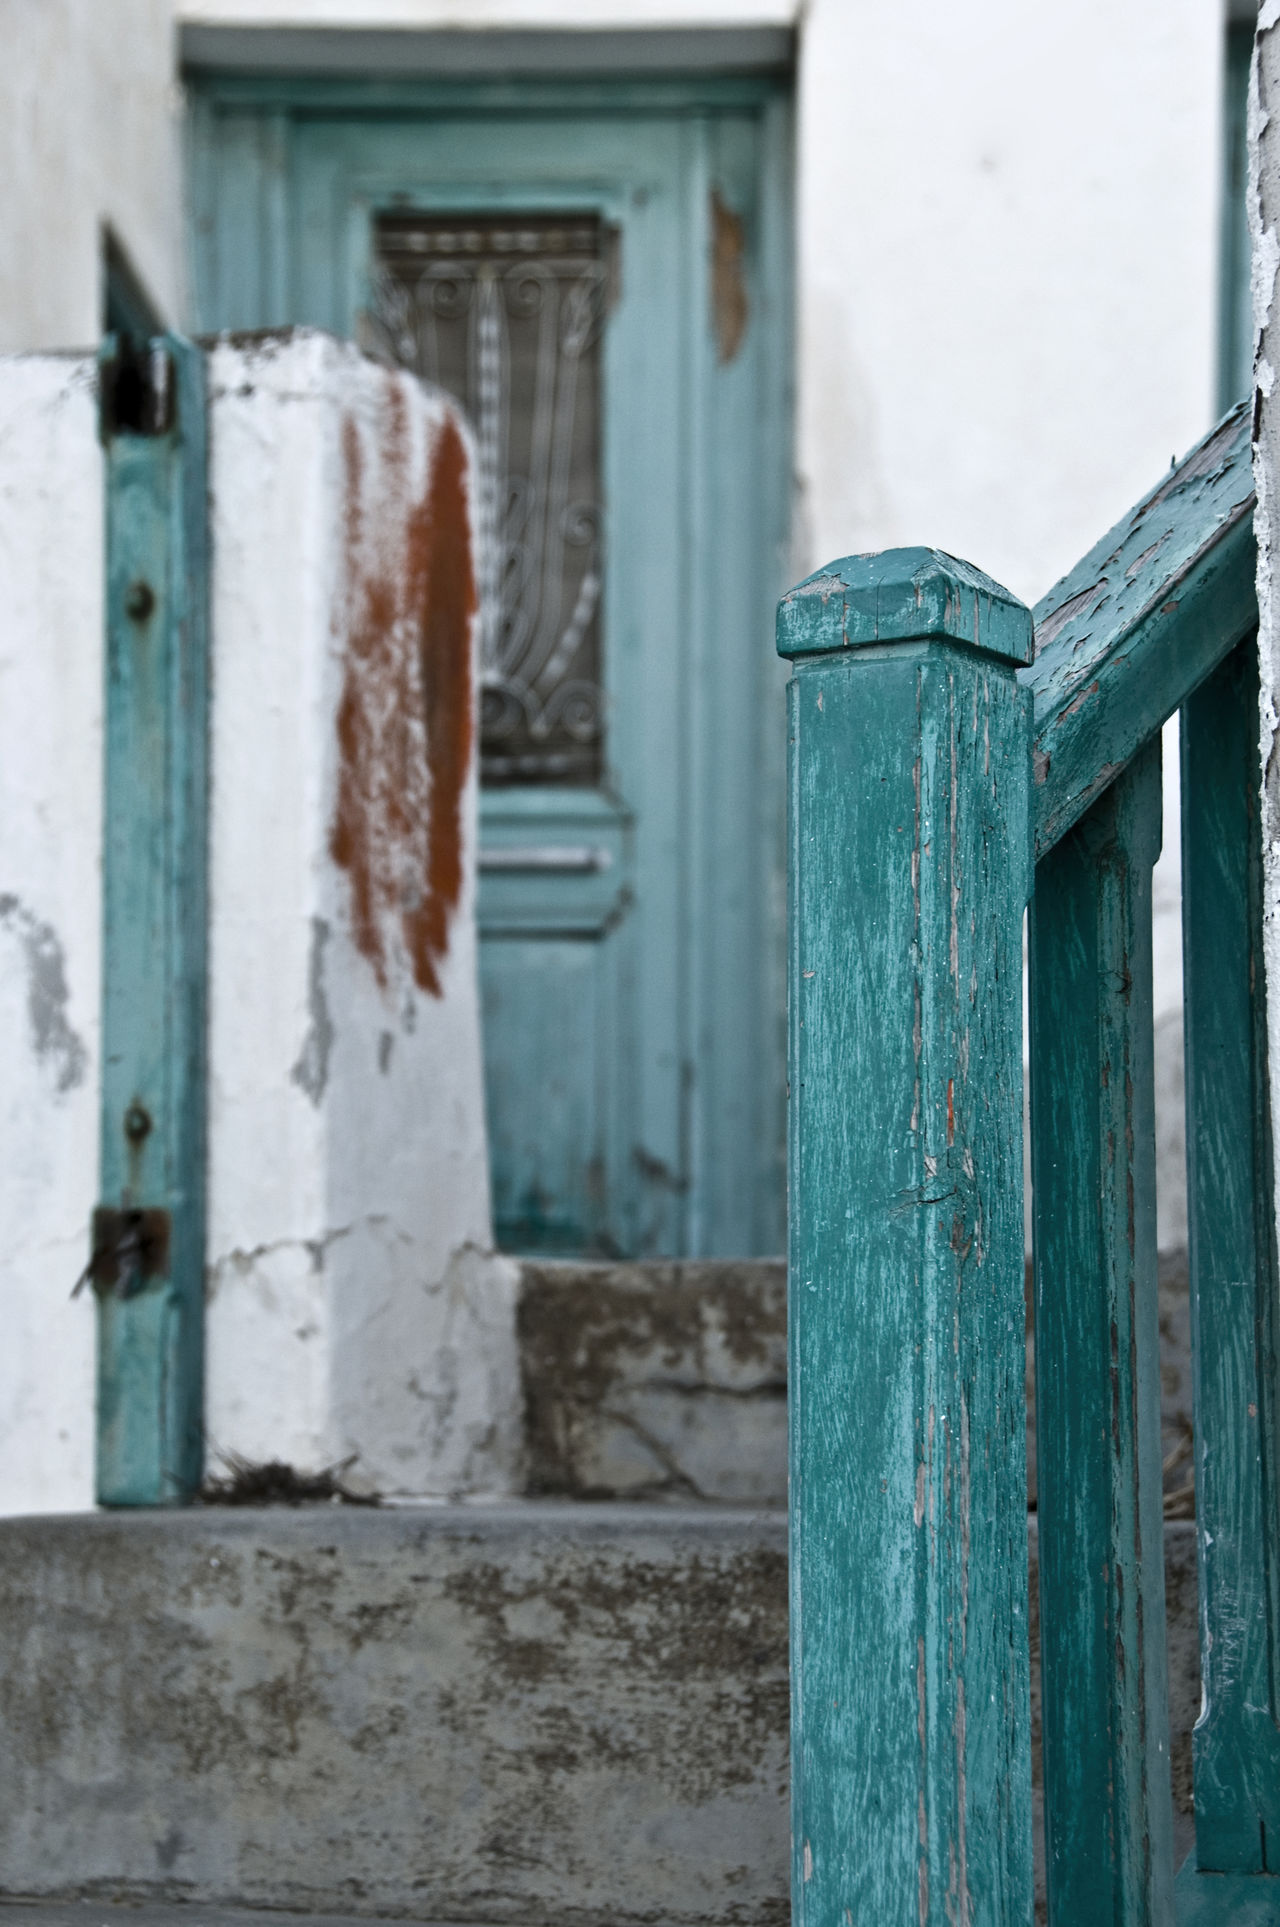 Blue Door Blue Fence And Blue Doo Distressed Wood Greek Islands Green Gate Pealing Paint Shades Of Teal Teal Gate Teal Hair